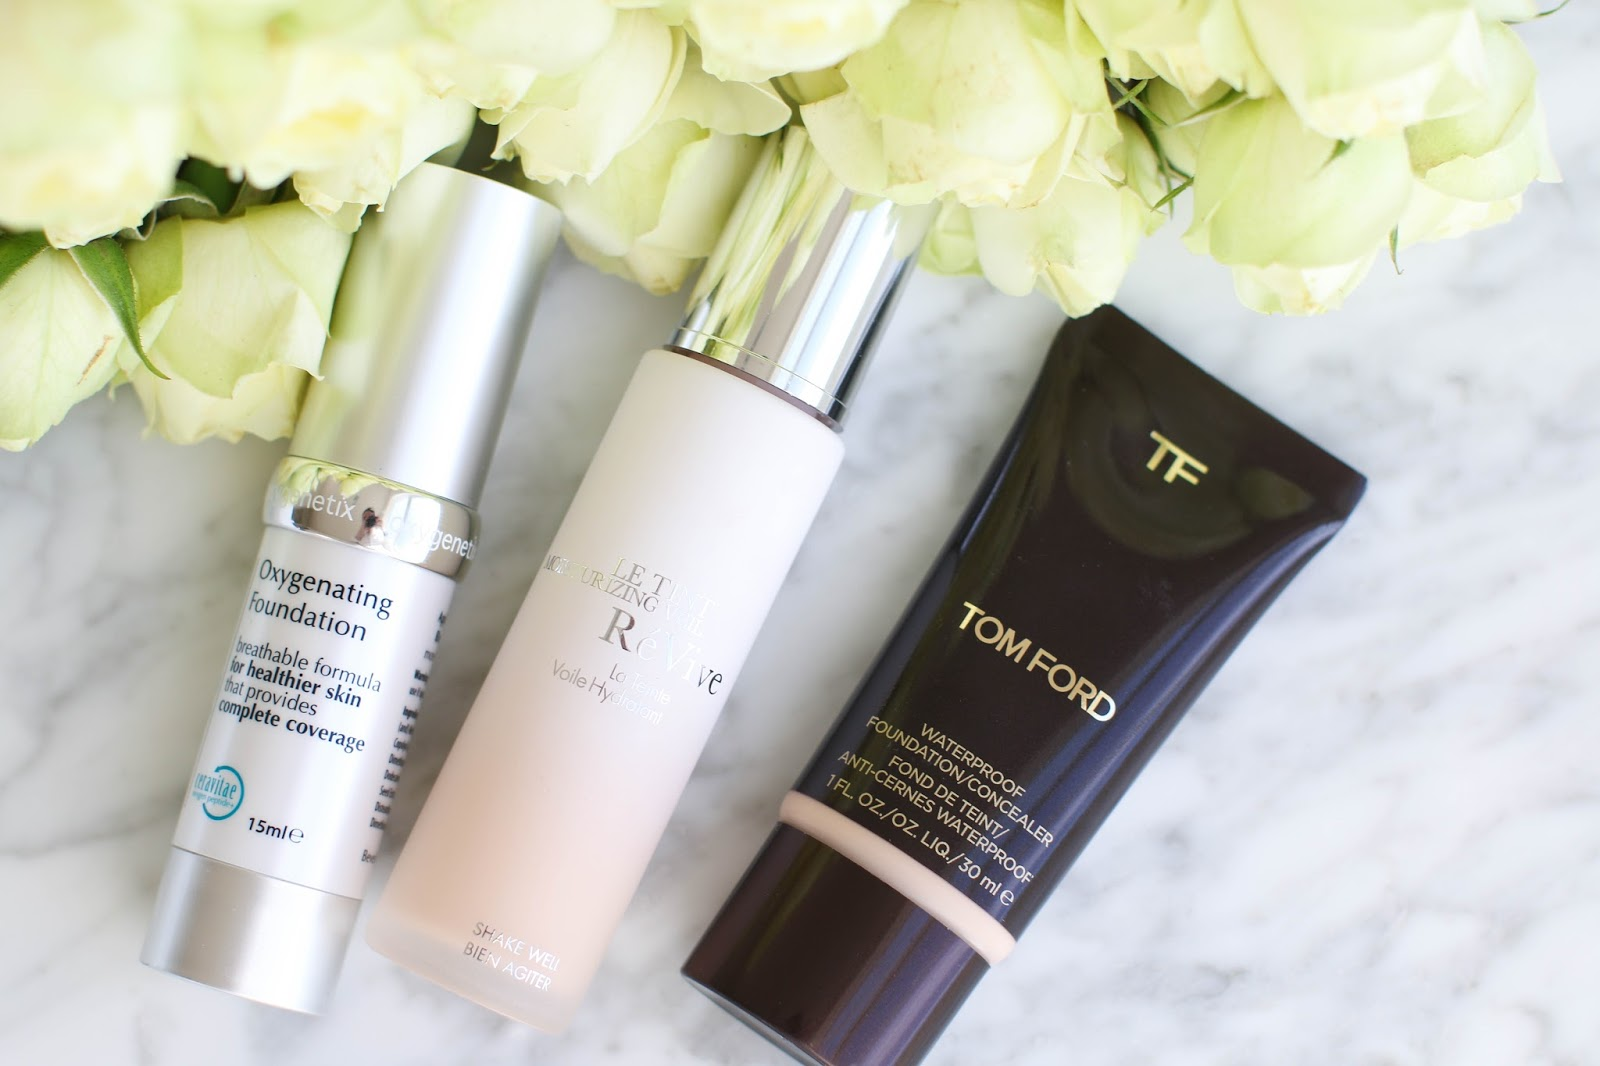 Foundation review of the Tom Ford Waterproof Foundation and Concealer.